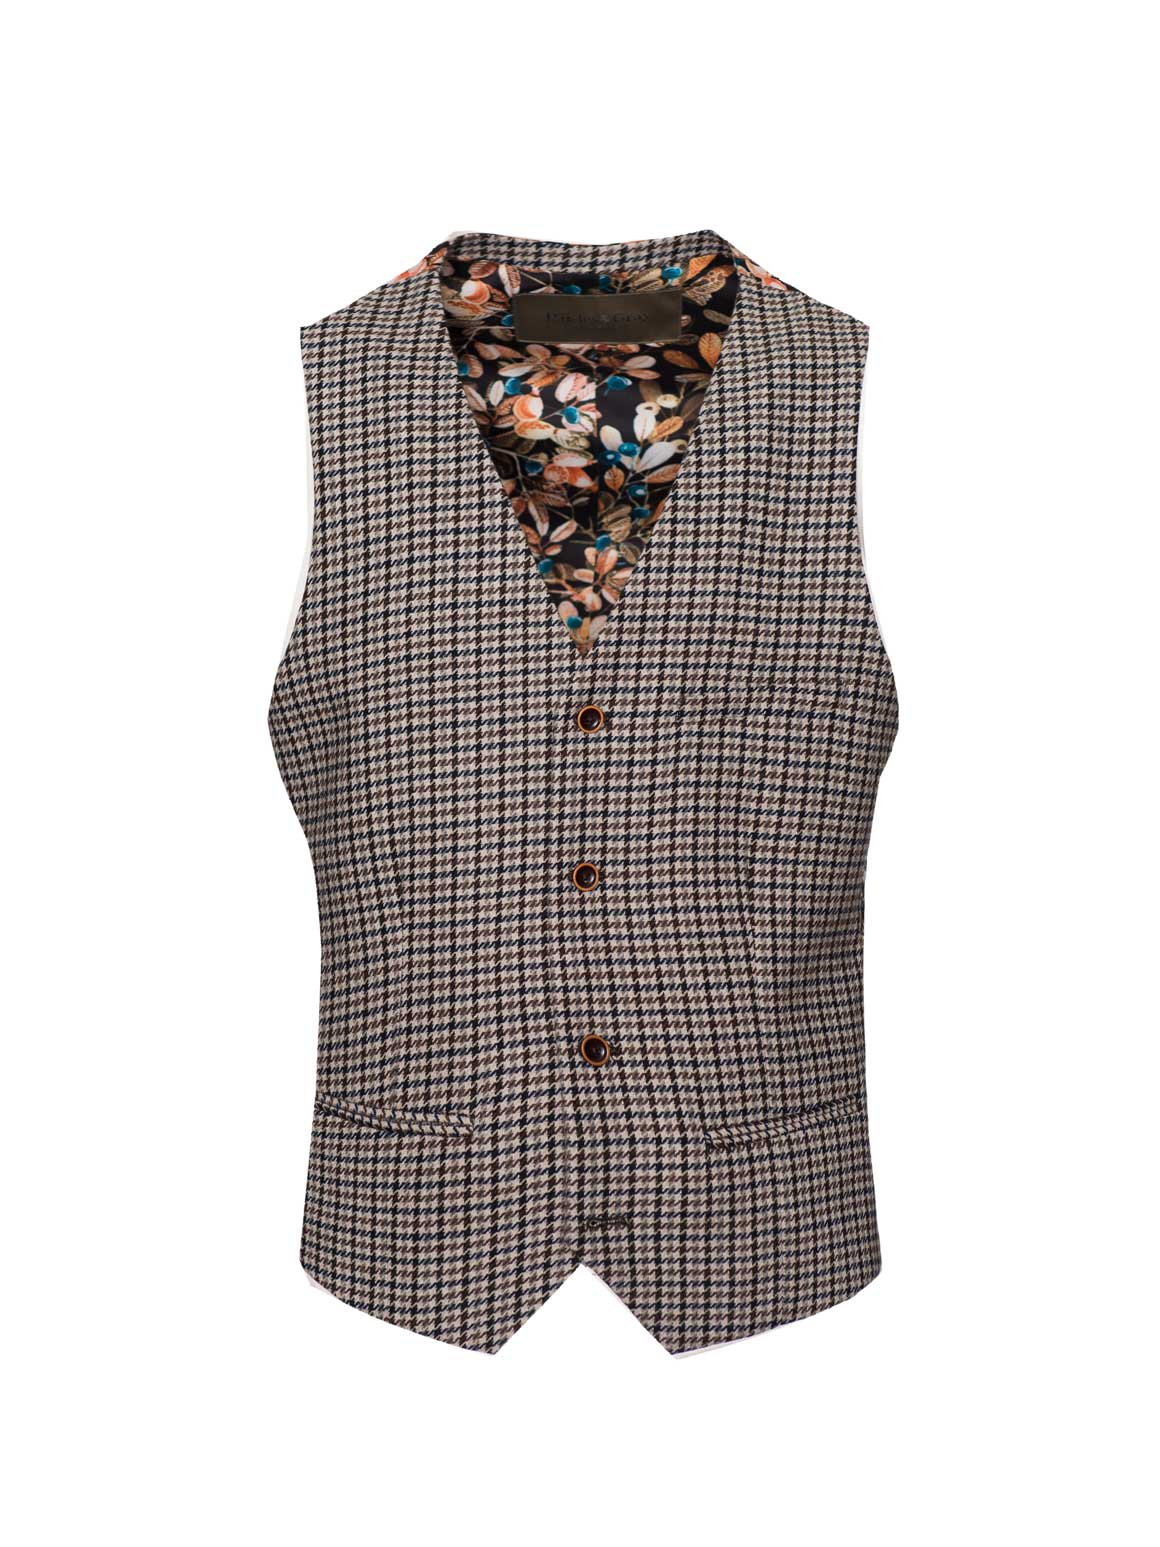 Eaton Vest - Black & Beige Small Check